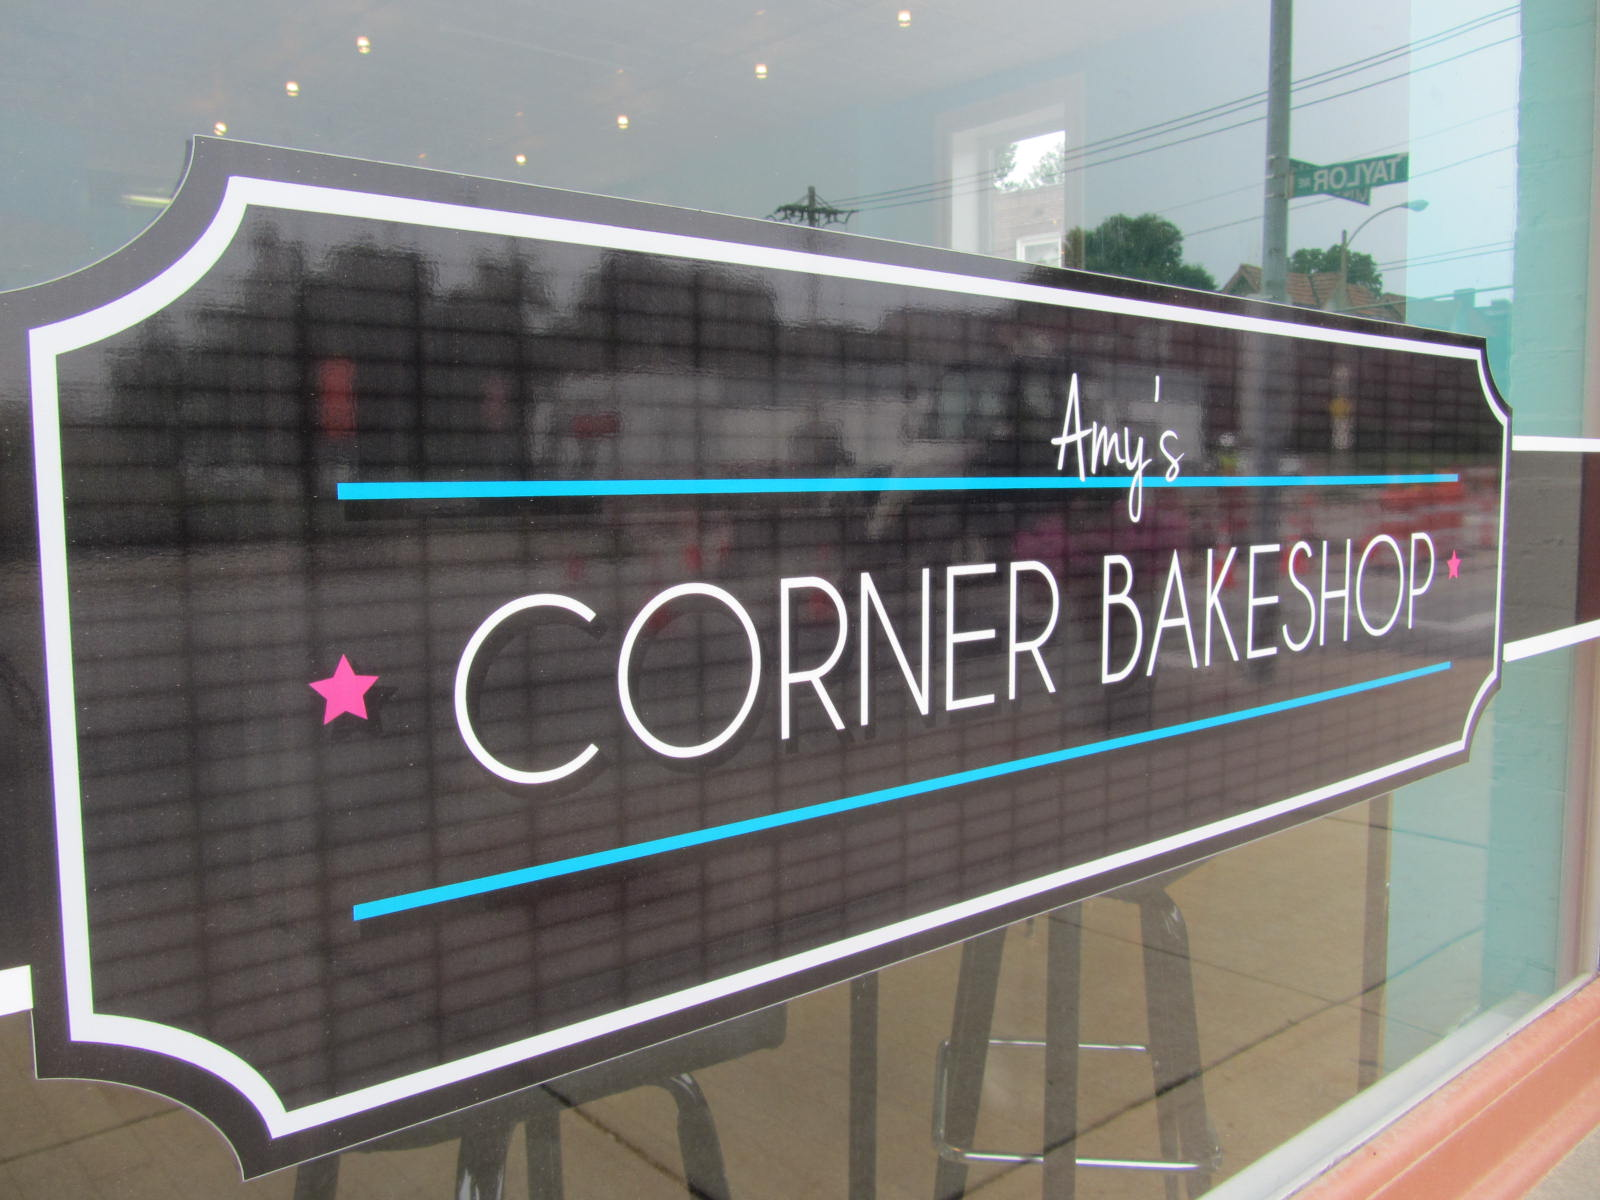 Exploring St. Louis: Amy's Corner Bakeshop